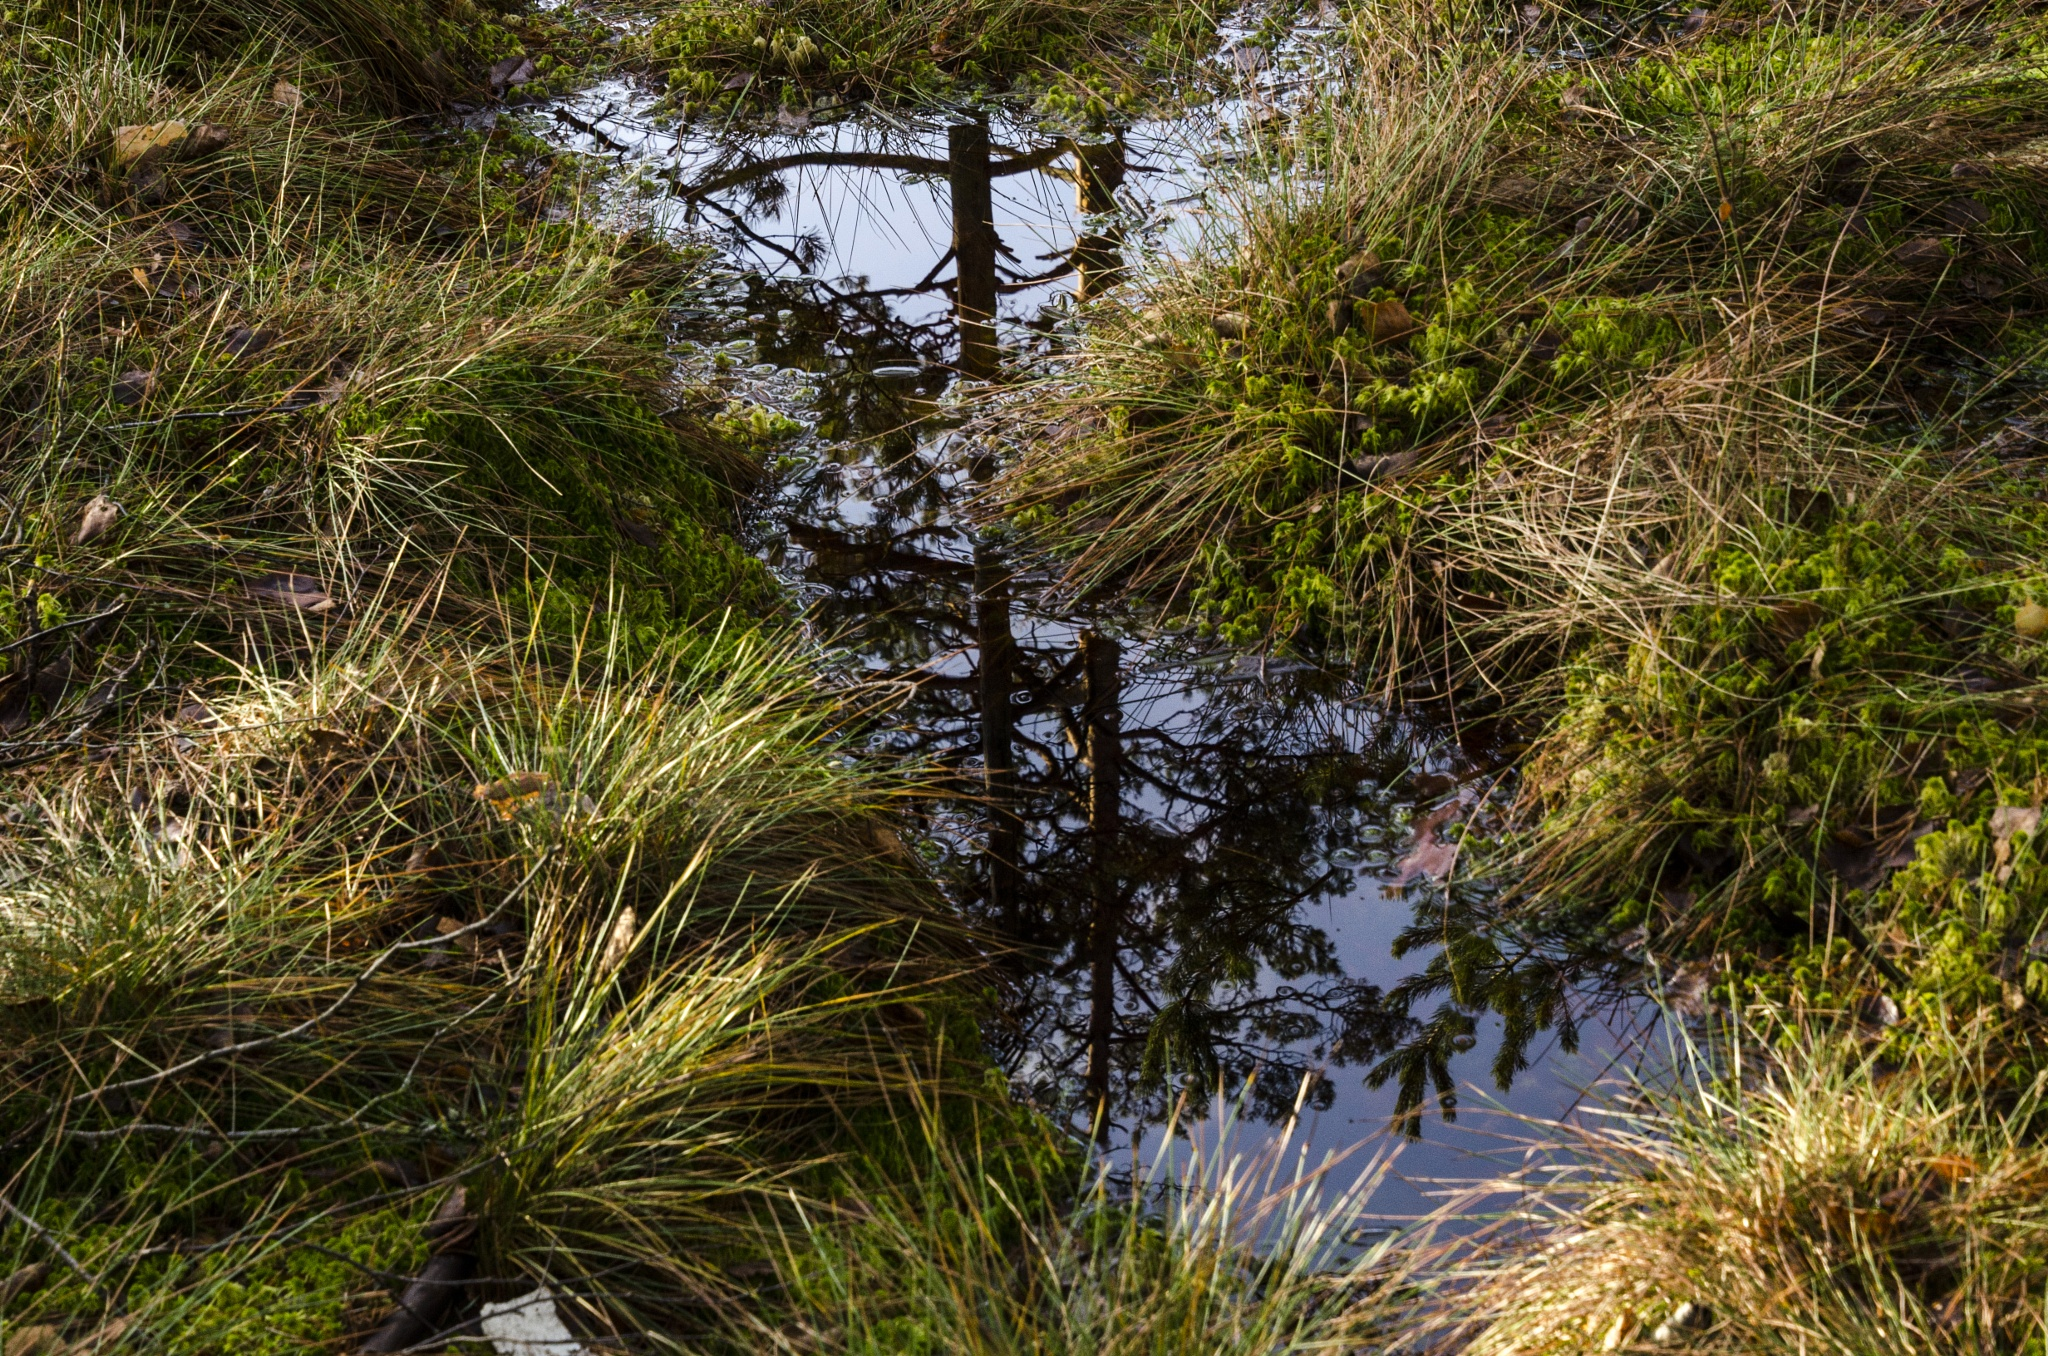 Reflective of trees in the water by Johnny Lythell